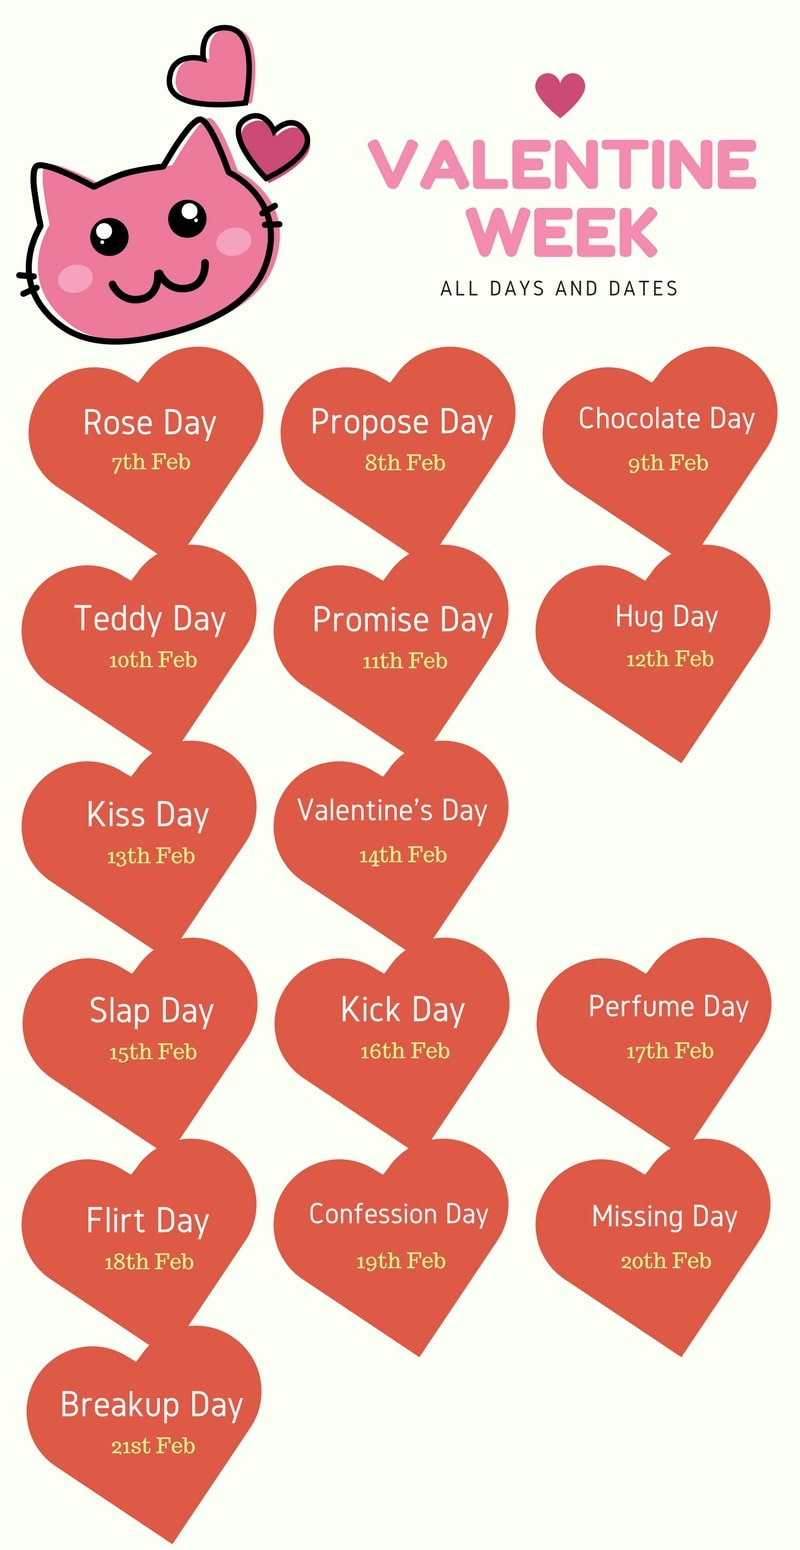 Valentine Week List 2018: Rose day, Propose day, Hug day, Kiss day ...